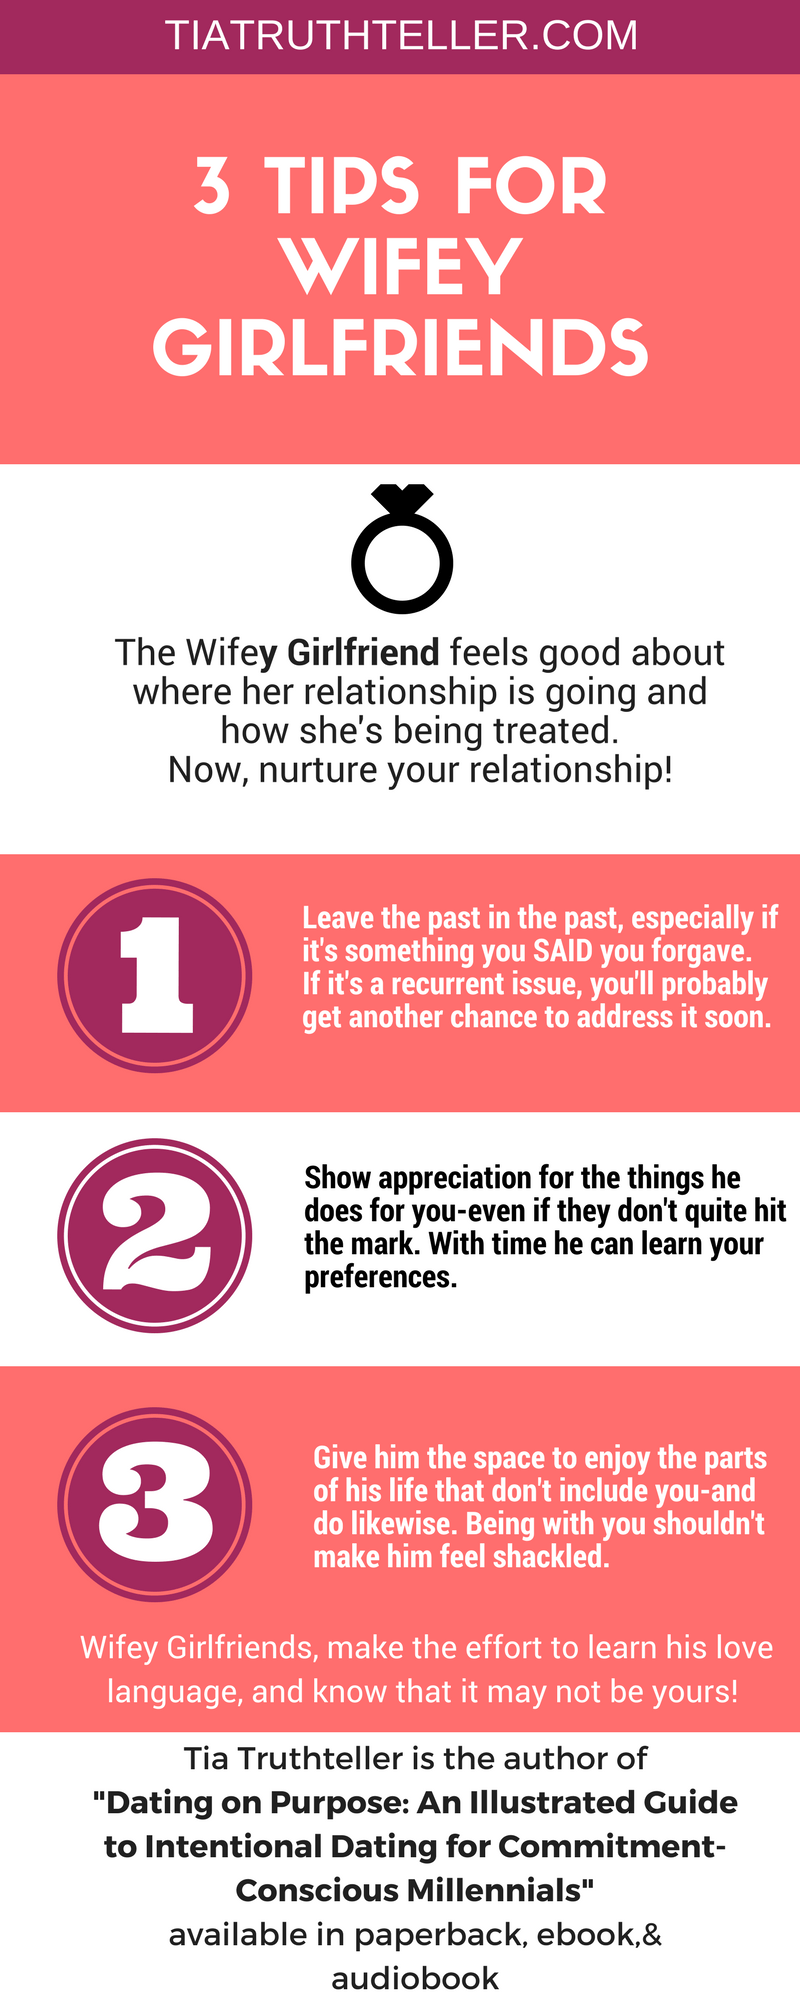 How to know if i should keep dating her